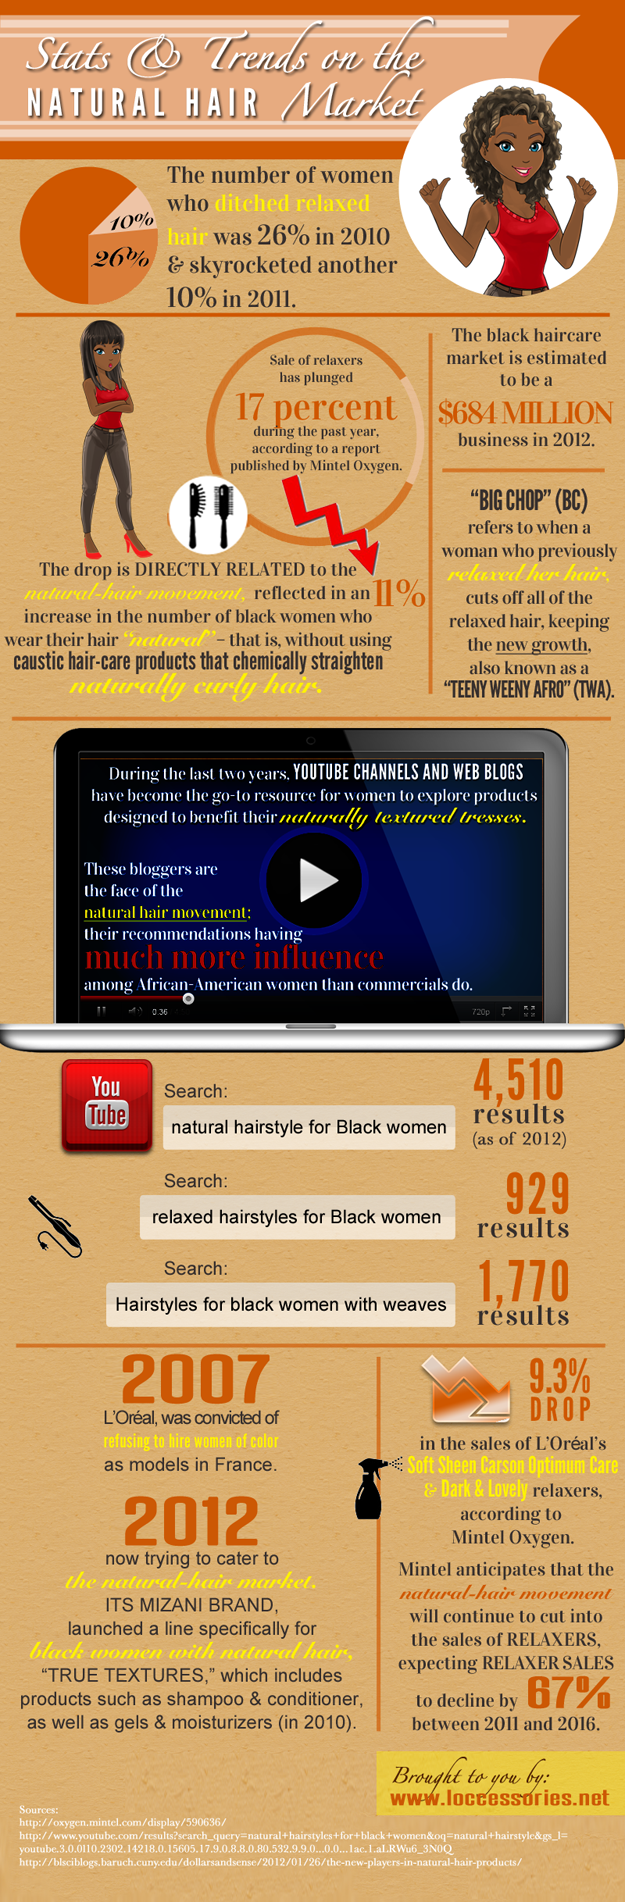 natural-hair-trends-infographic